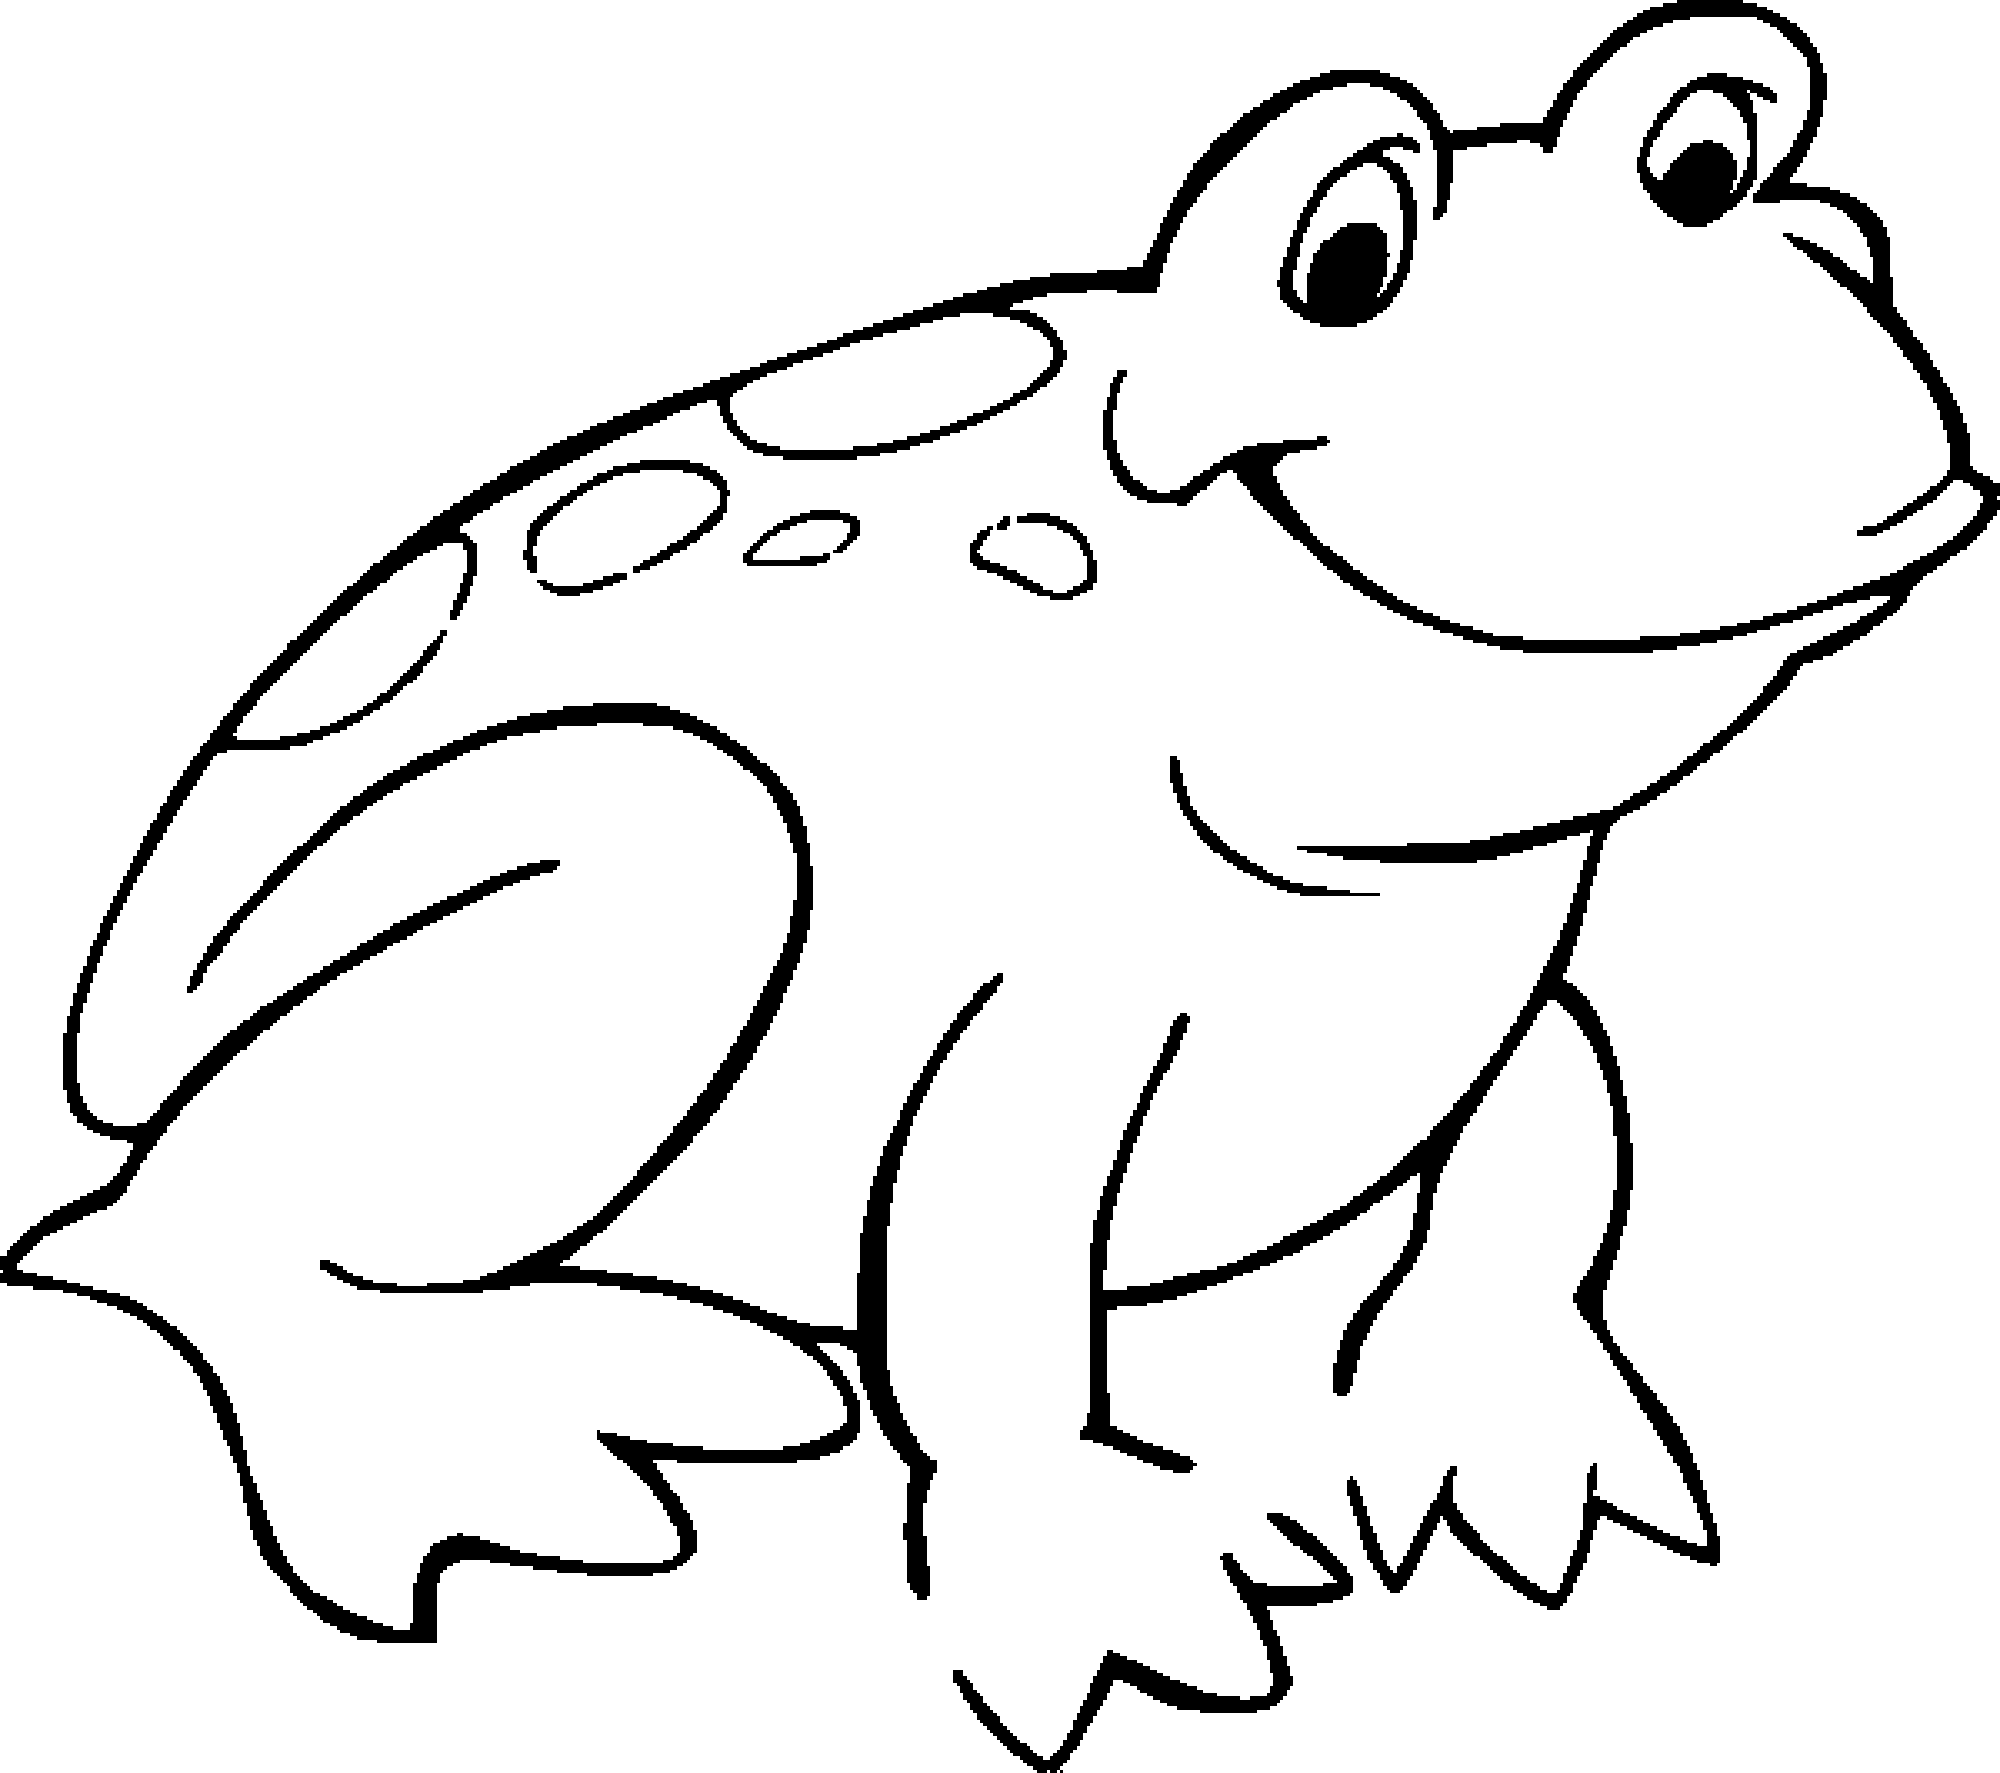 frogs coloring pages print download frog coloring pages theme for kids coloring pages frogs